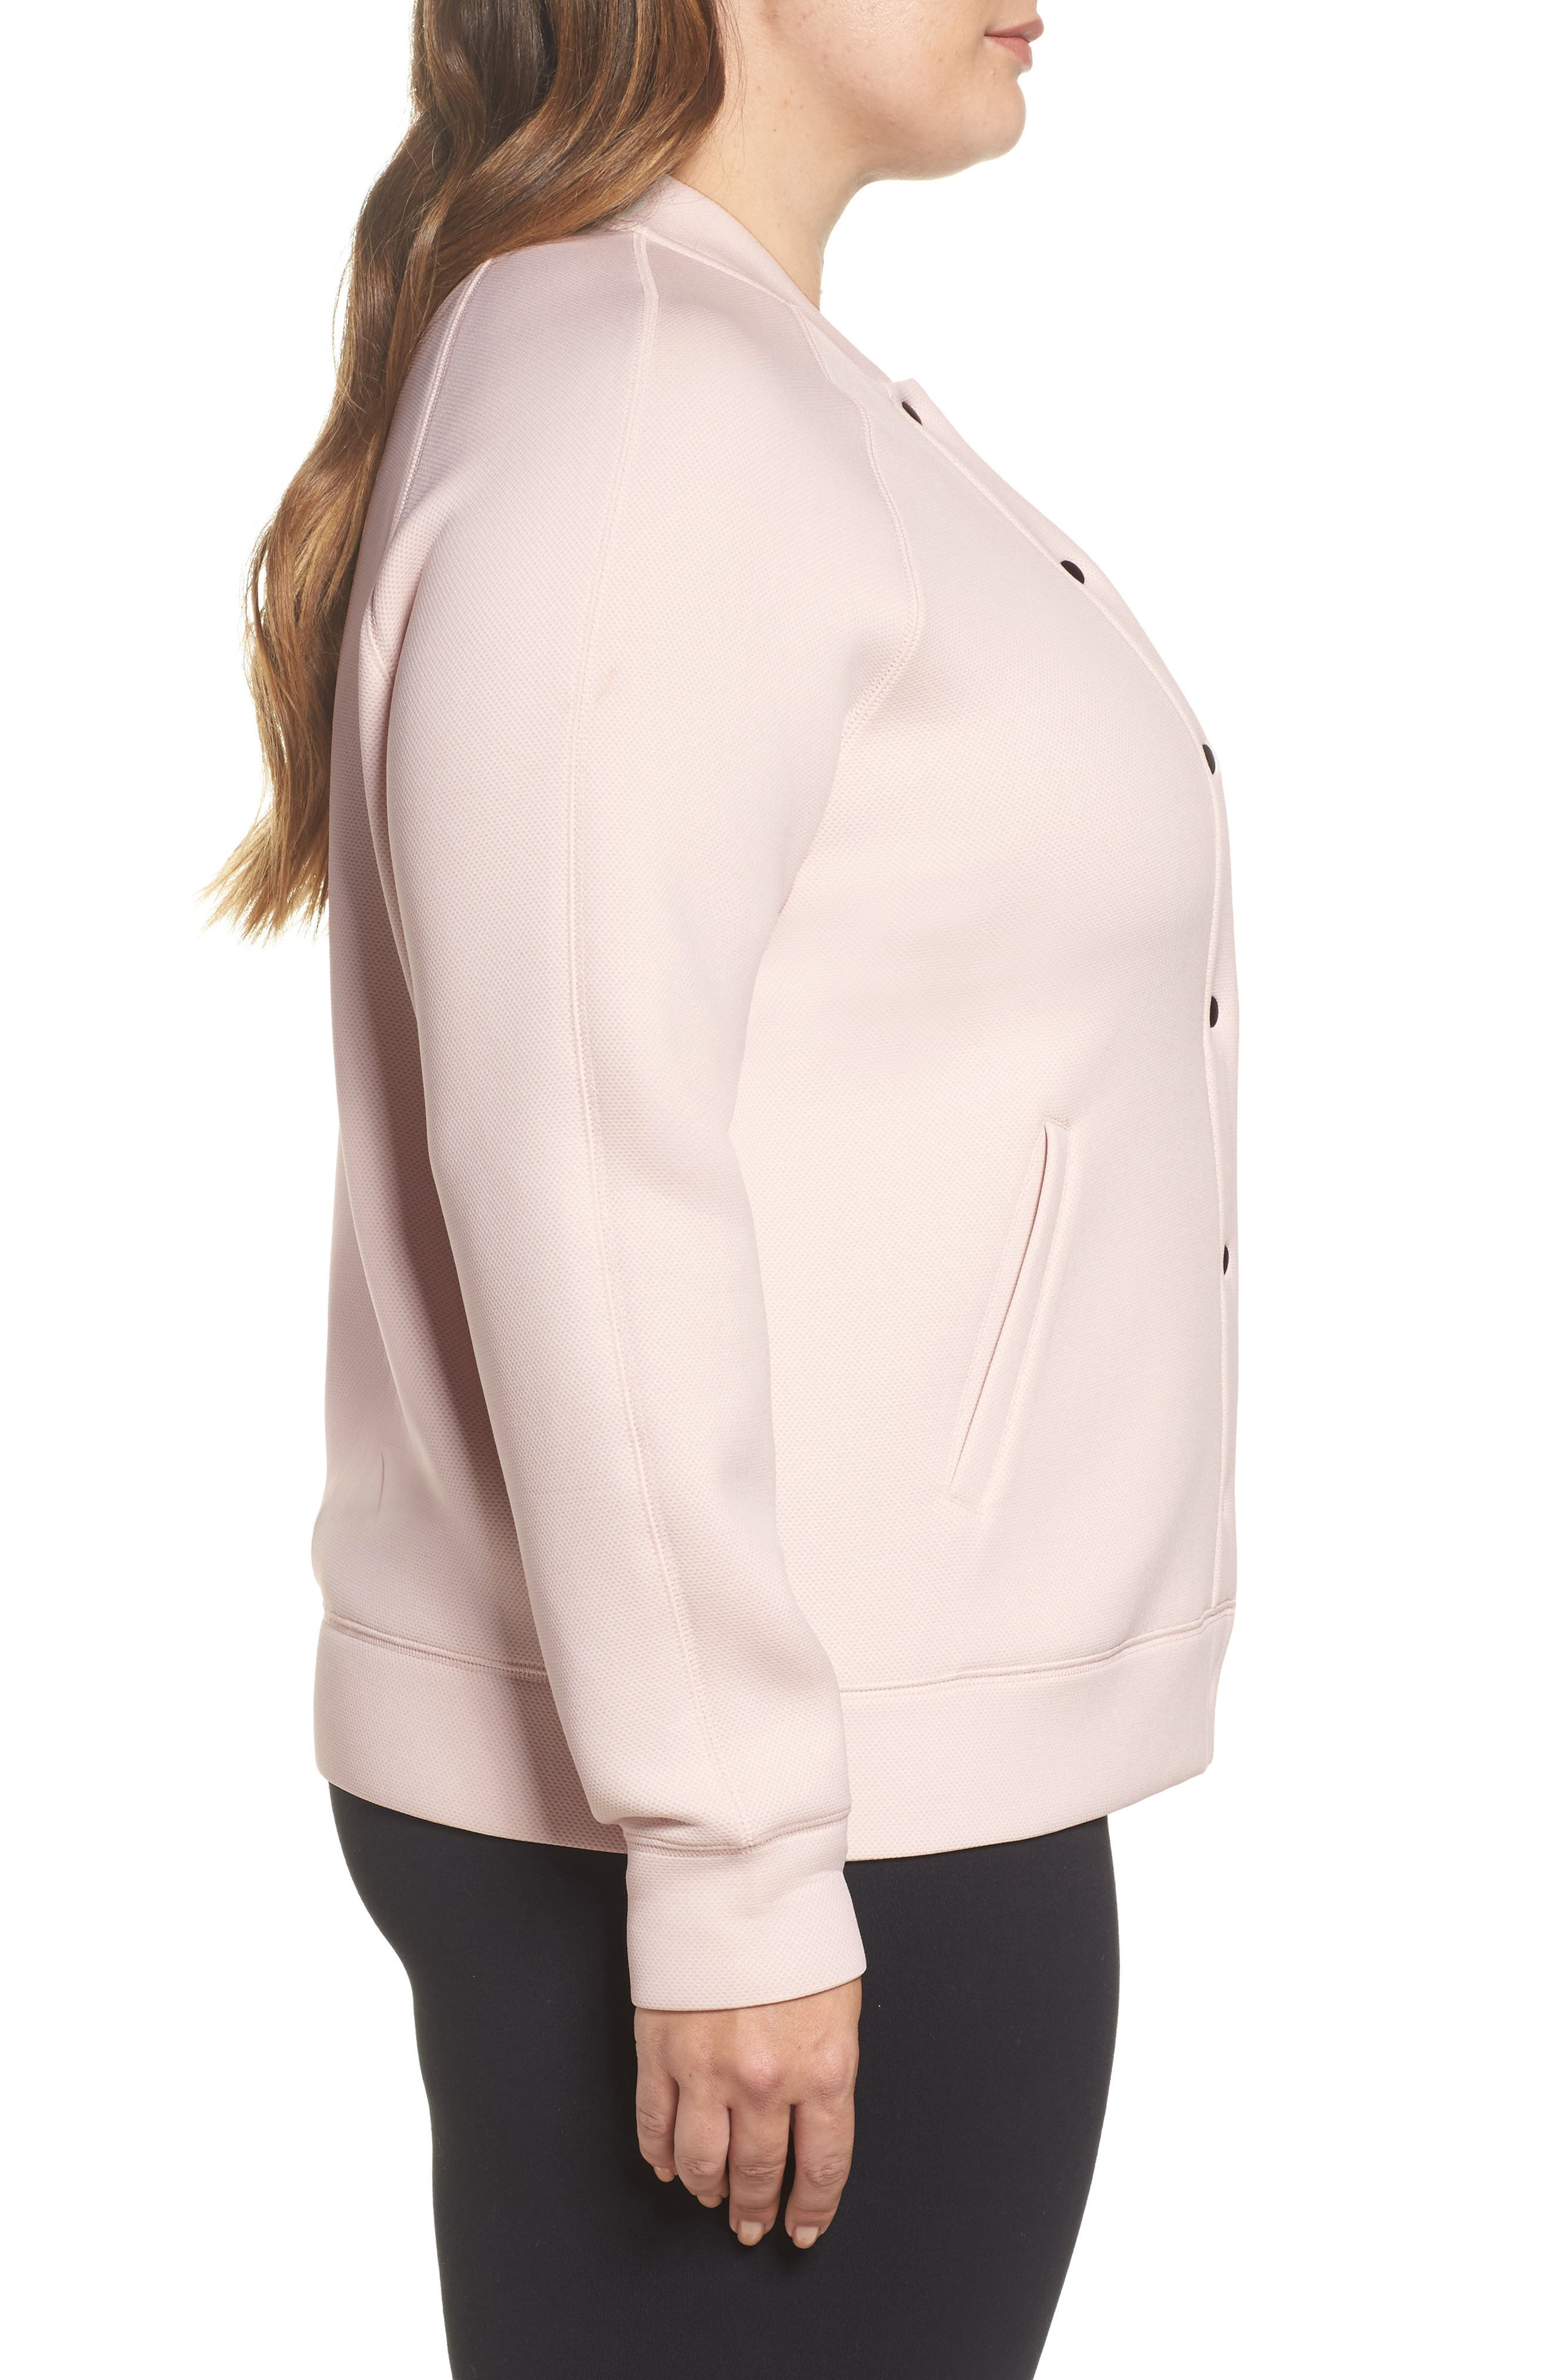 Arise Luxe Bomber Jacket,                             Alternate thumbnail 3, color,                             Pink Morganite